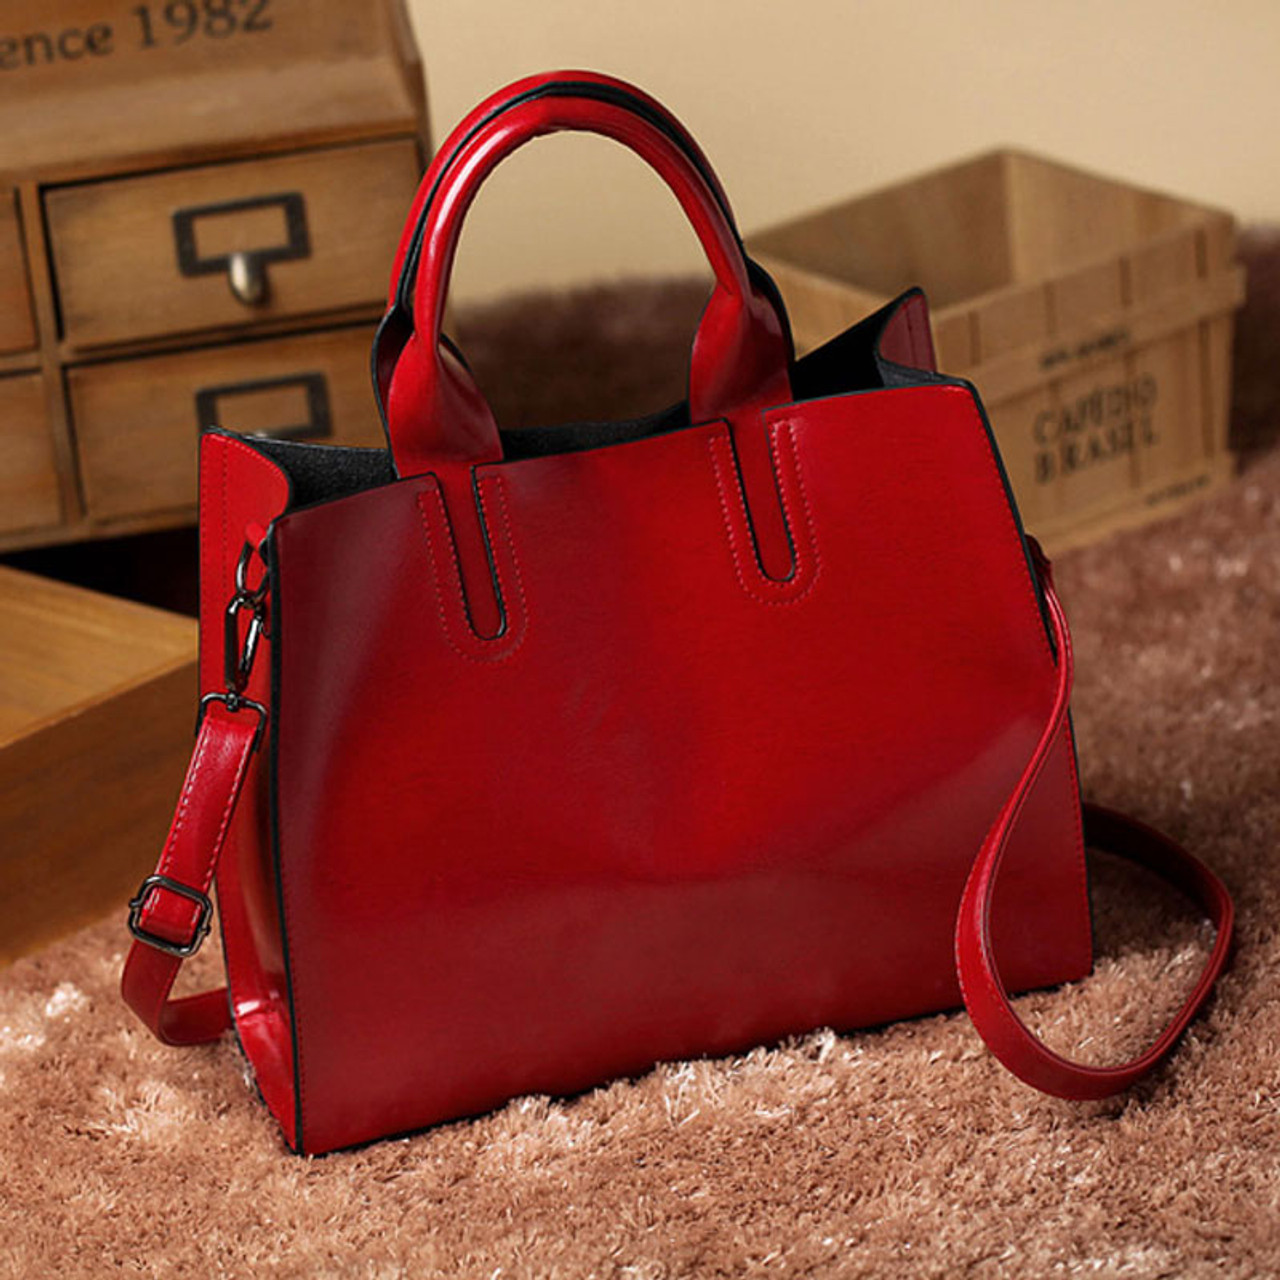 23b5096283 ... Leather Bags Handbags Women Famous Brands Big Casual Women Bags Trunk  Tote Spanish Brand Shoulder Bag ...